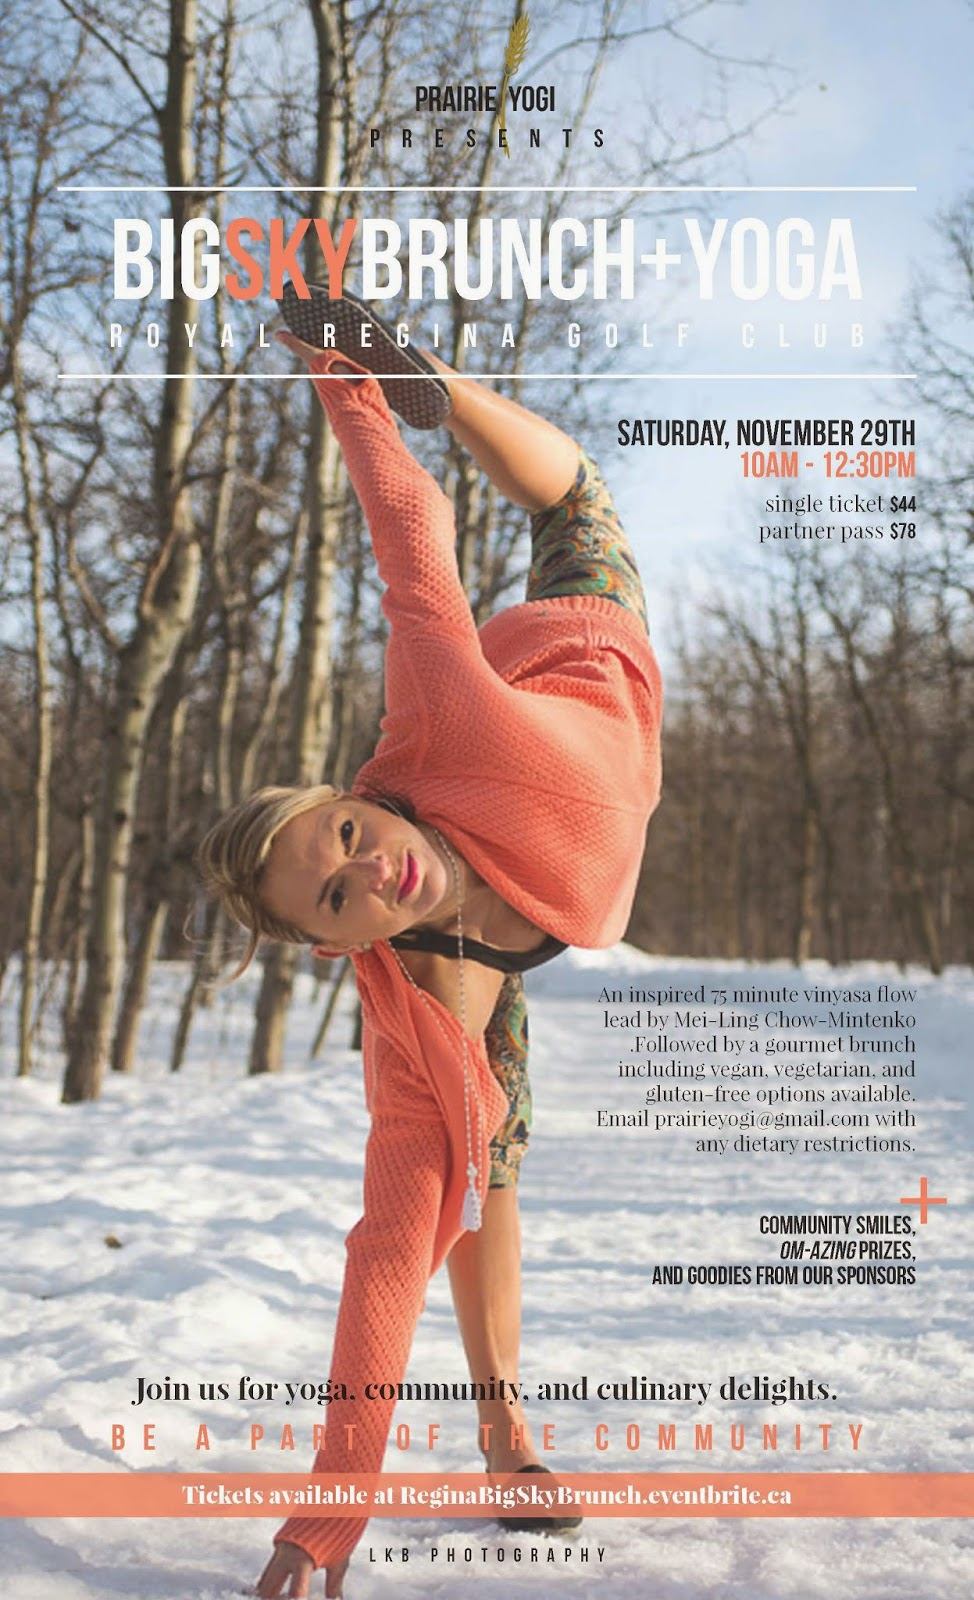 Saskatchewan Yoga, Saskatoon events, What to do in Saskatoon, What to do in Regina, Yoga Community, Mei-Ling Chow-Mintenko, Tahnee Fournier, Lynette Suchar, Prairie Yogi Events